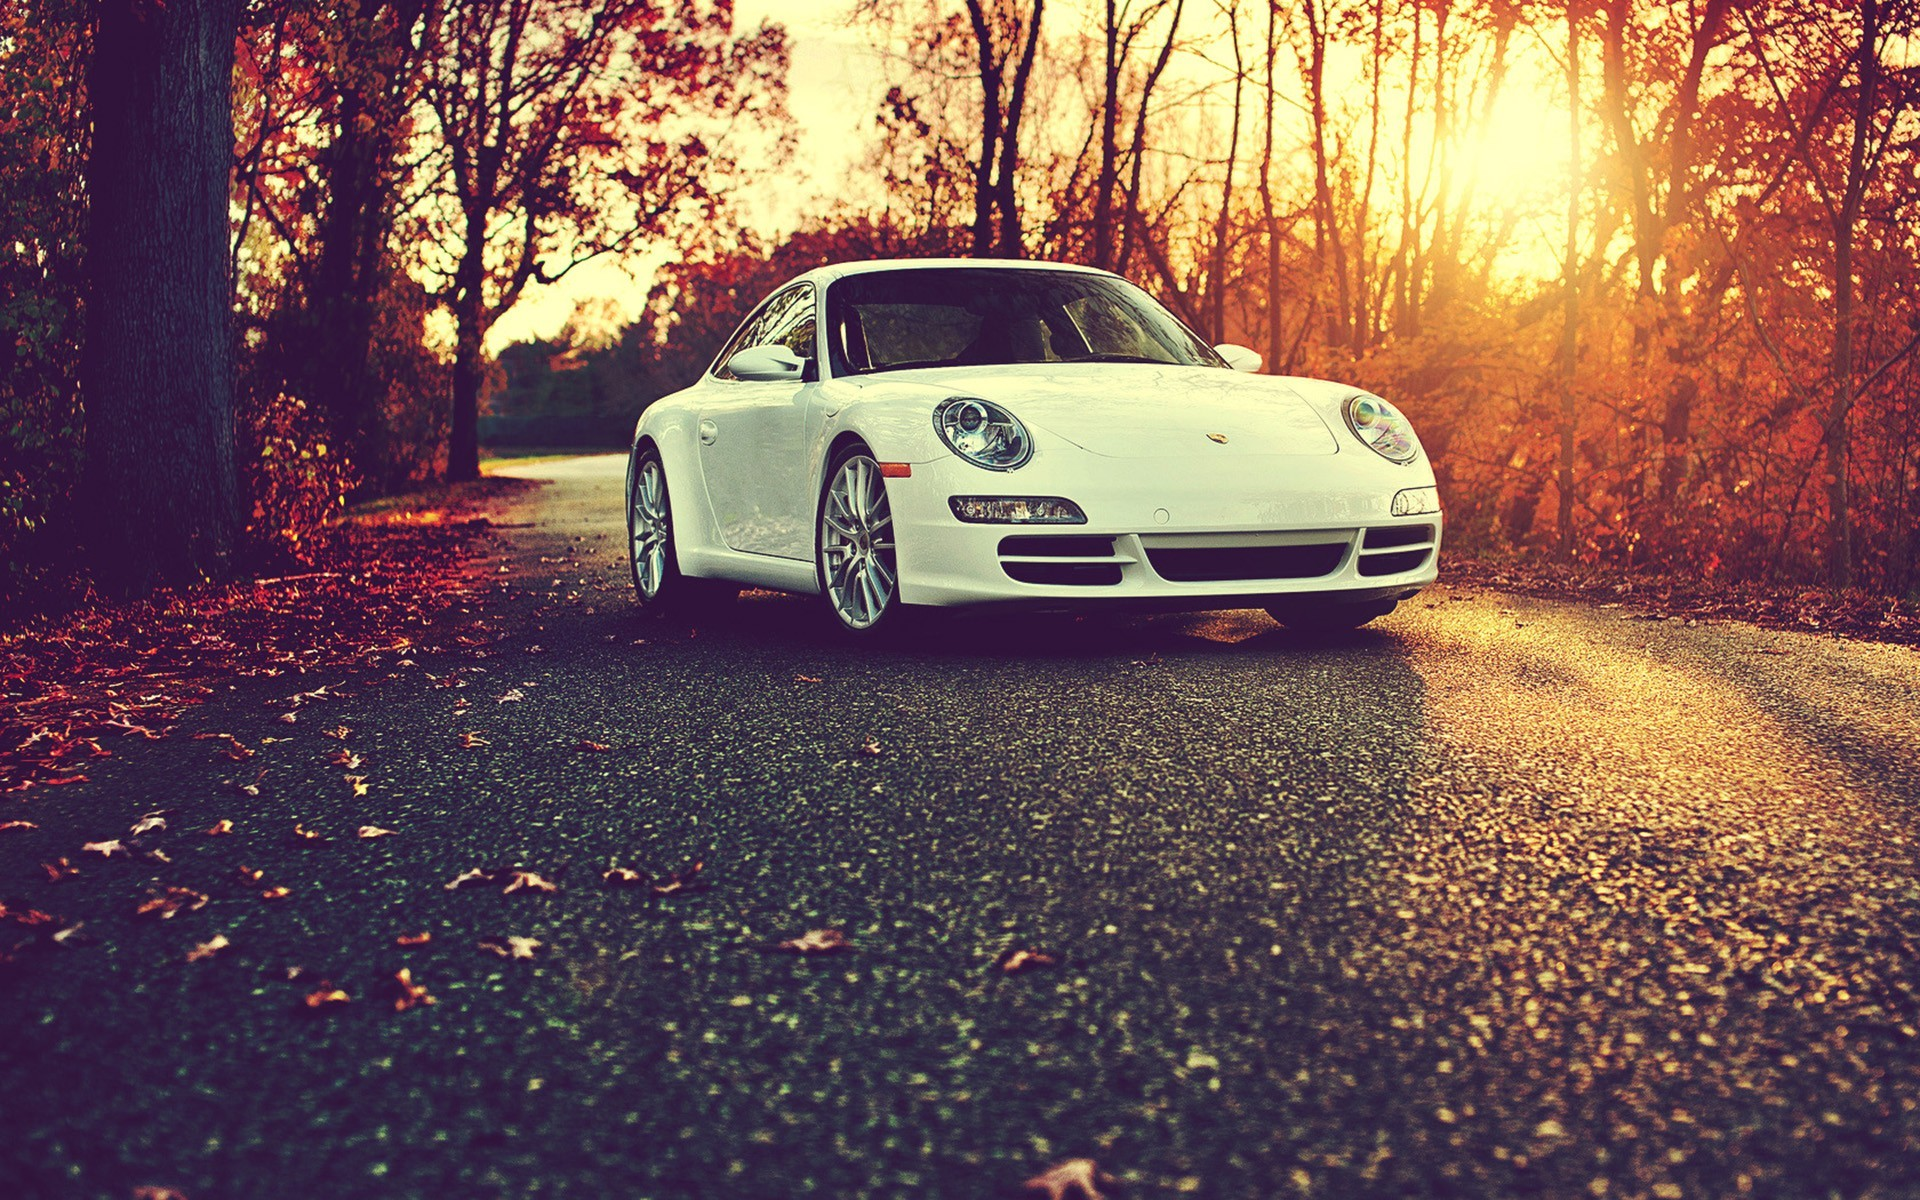 1280x800 Fall Hd Wallpaper Porsche Cayman White Fall Sunset Wallpapers Hd